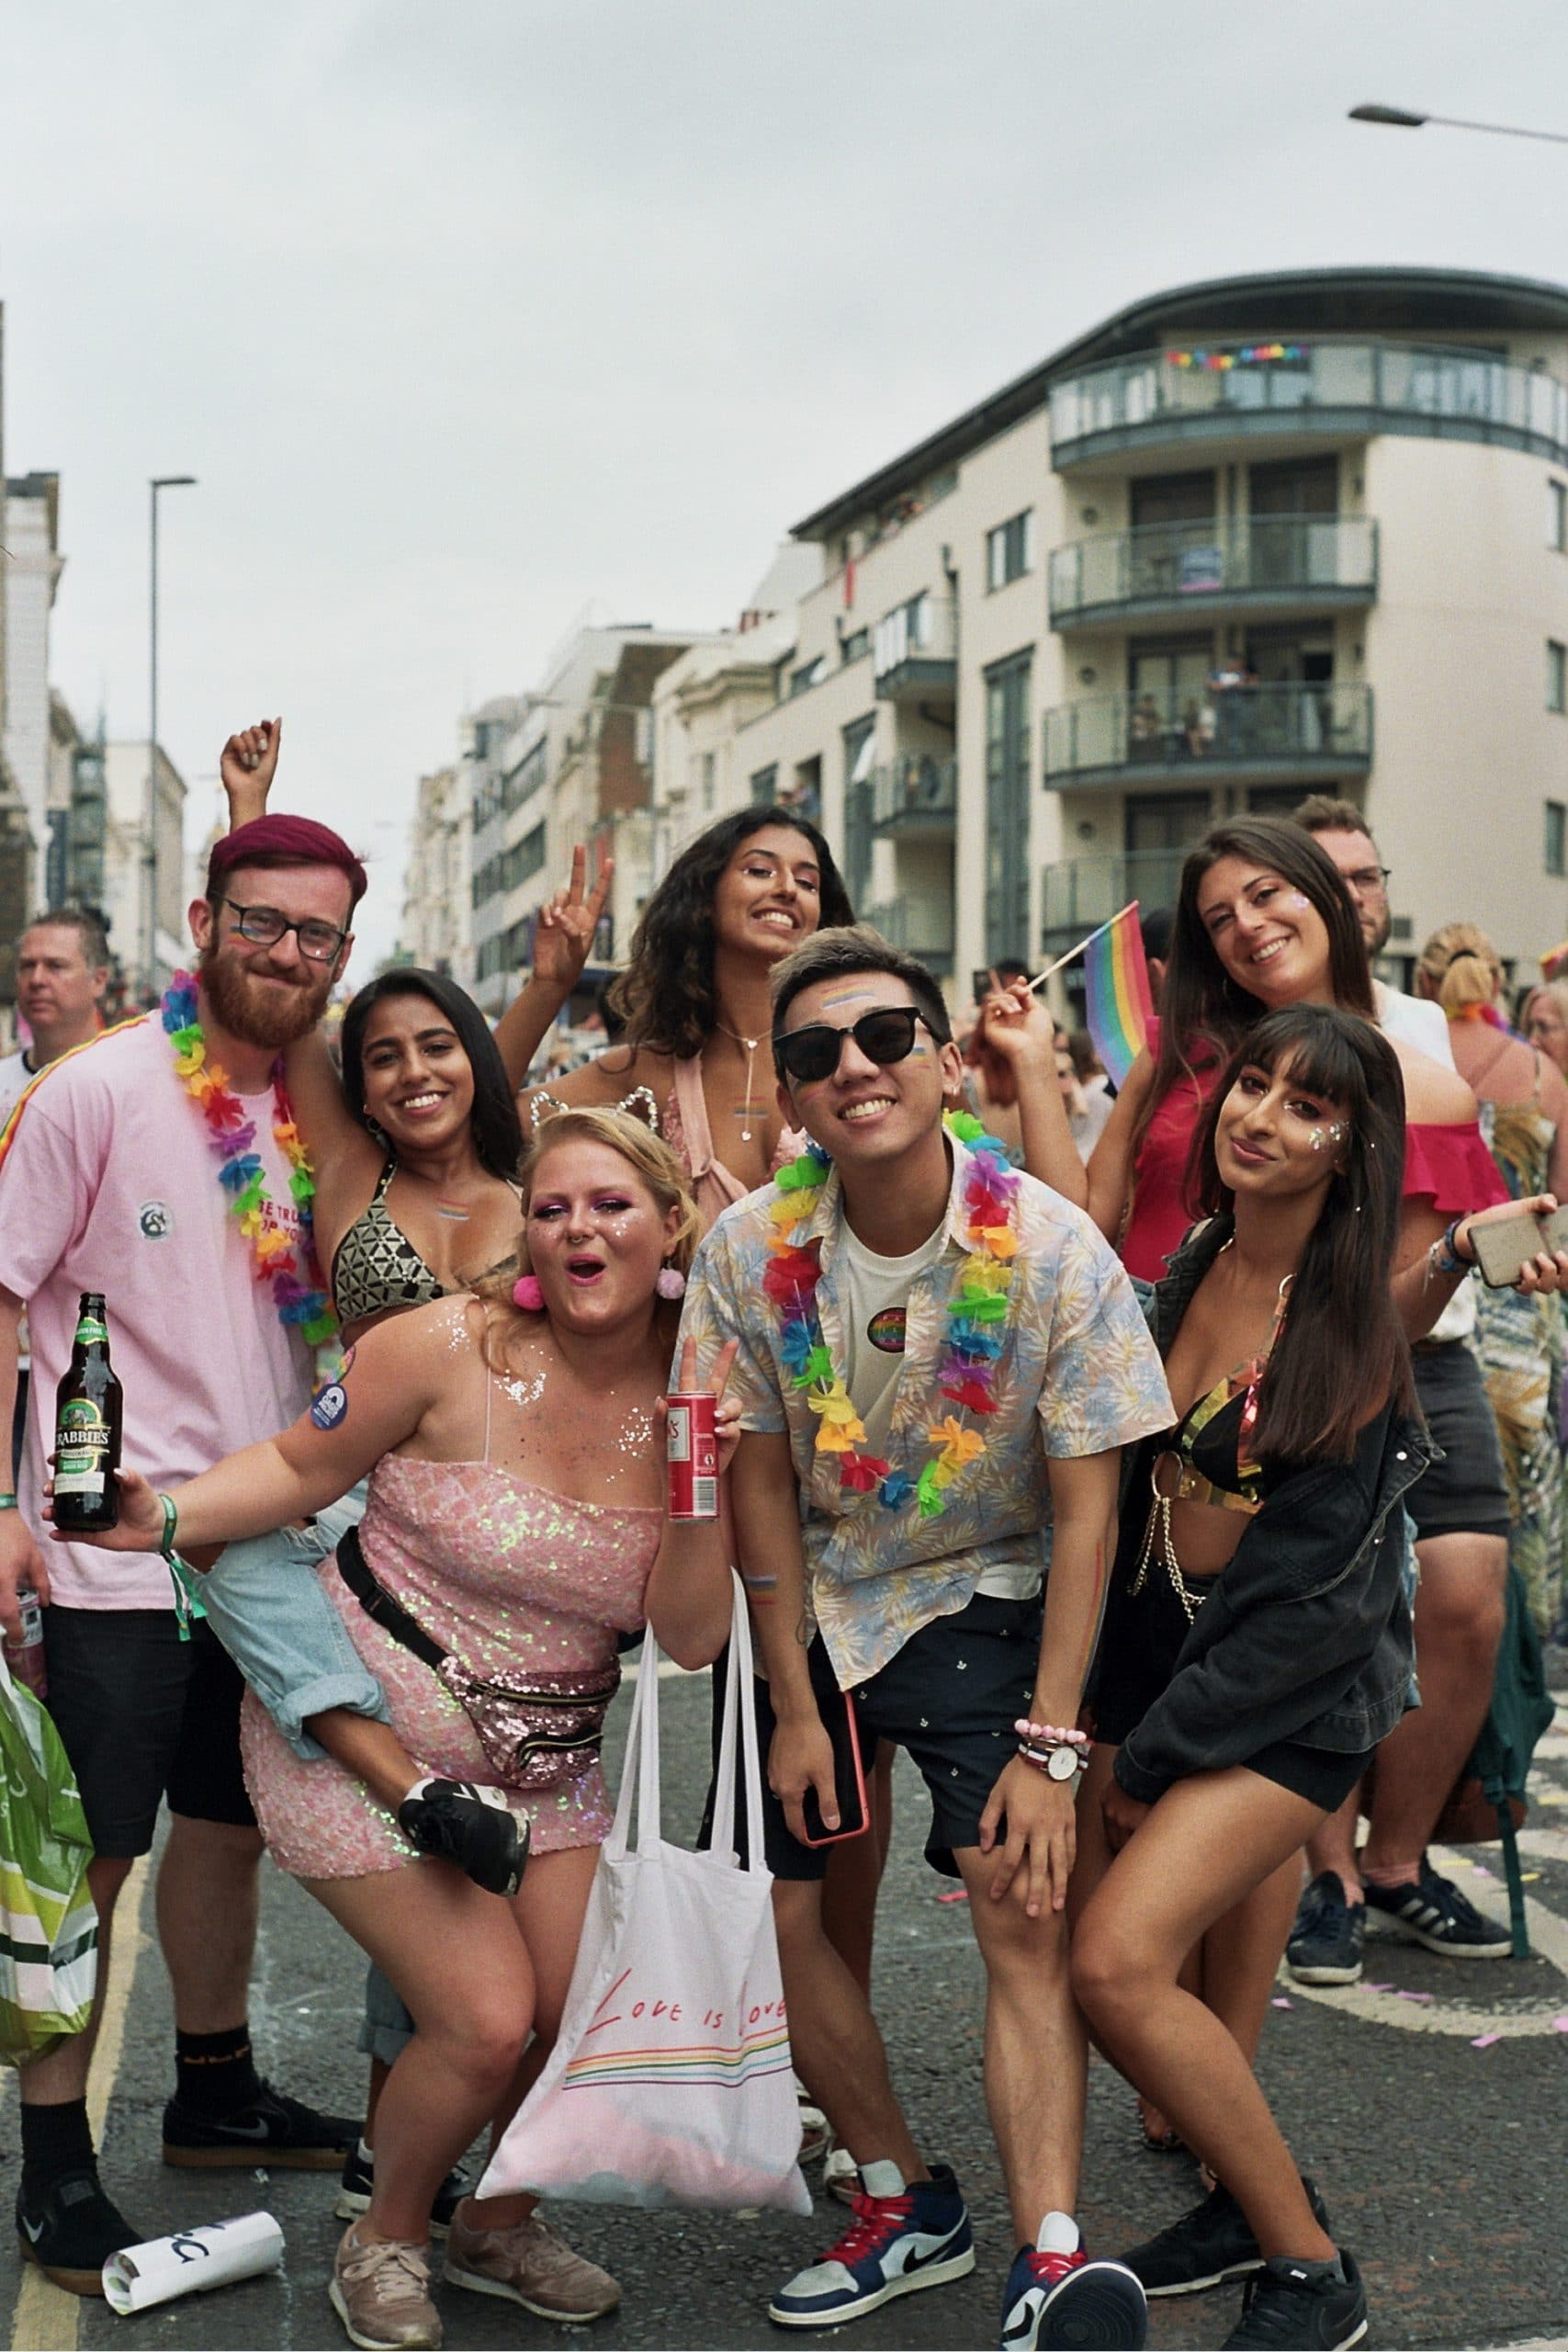 How is the international day against homophobia, transphobia and biphobia celebrated globally?